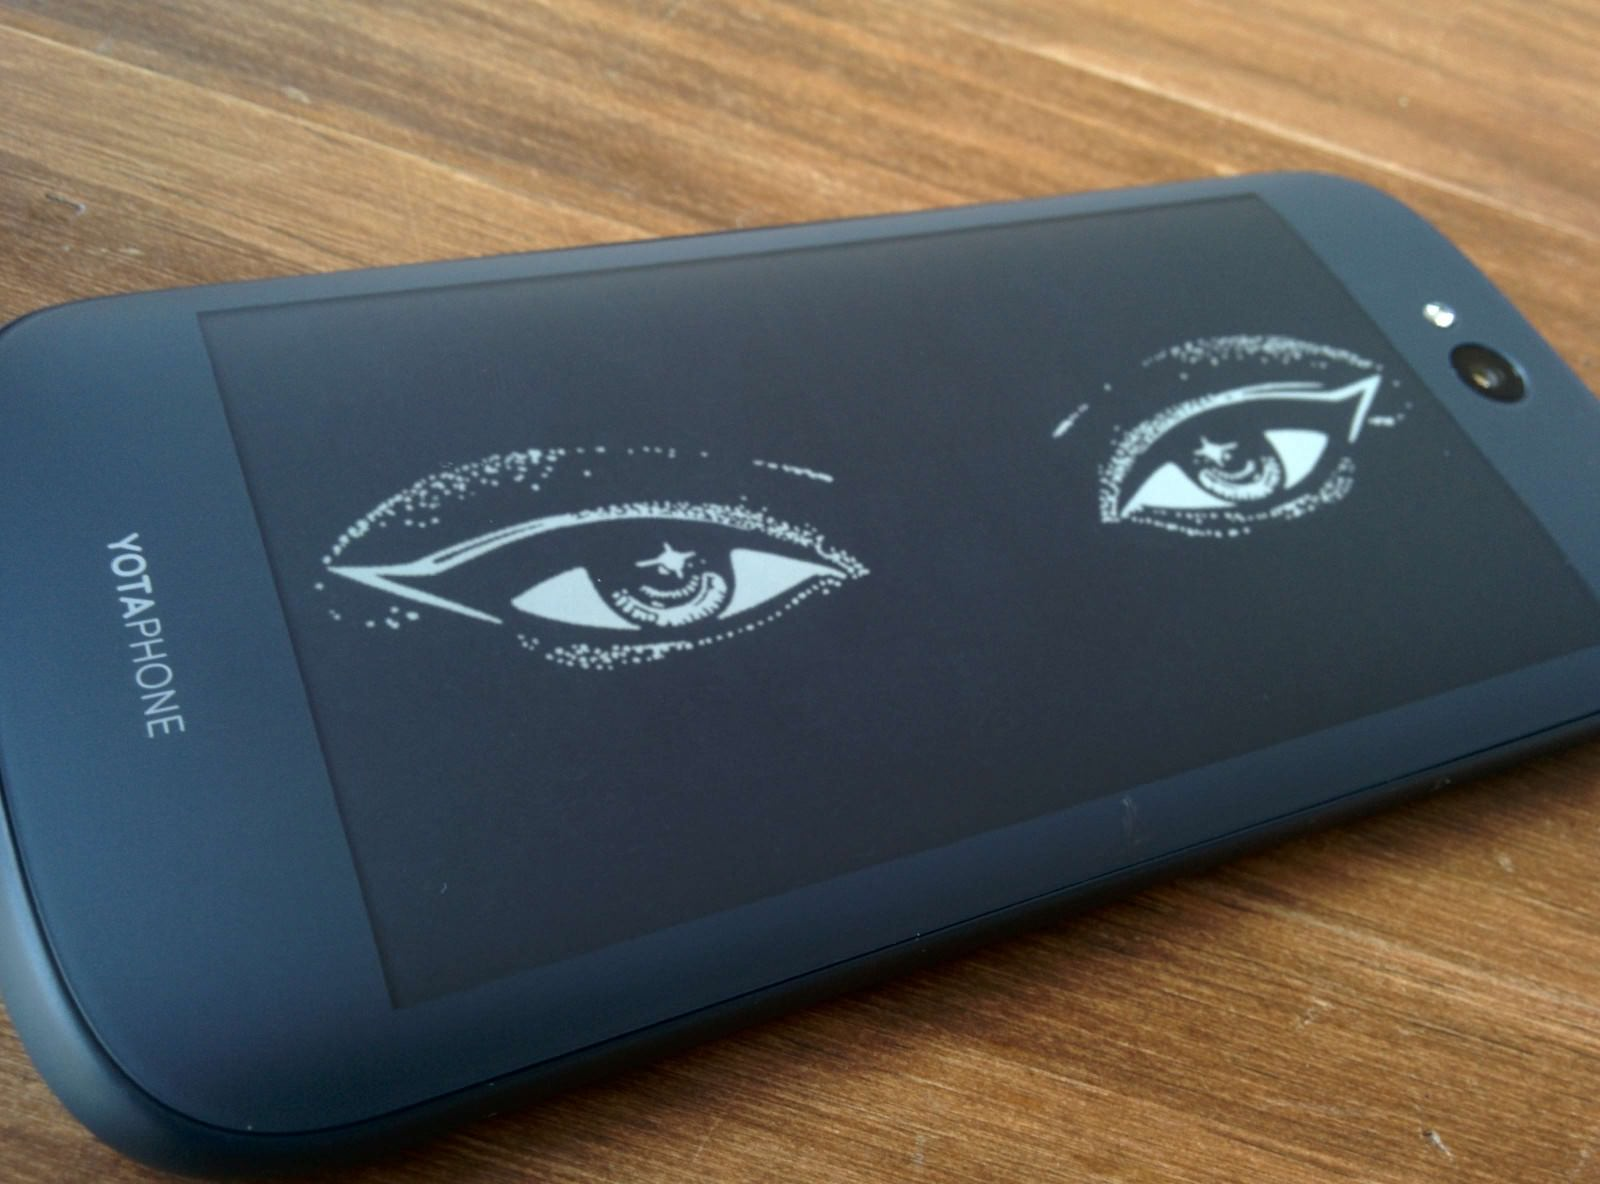 yotaphone-2-review-camera-weboo-co-9